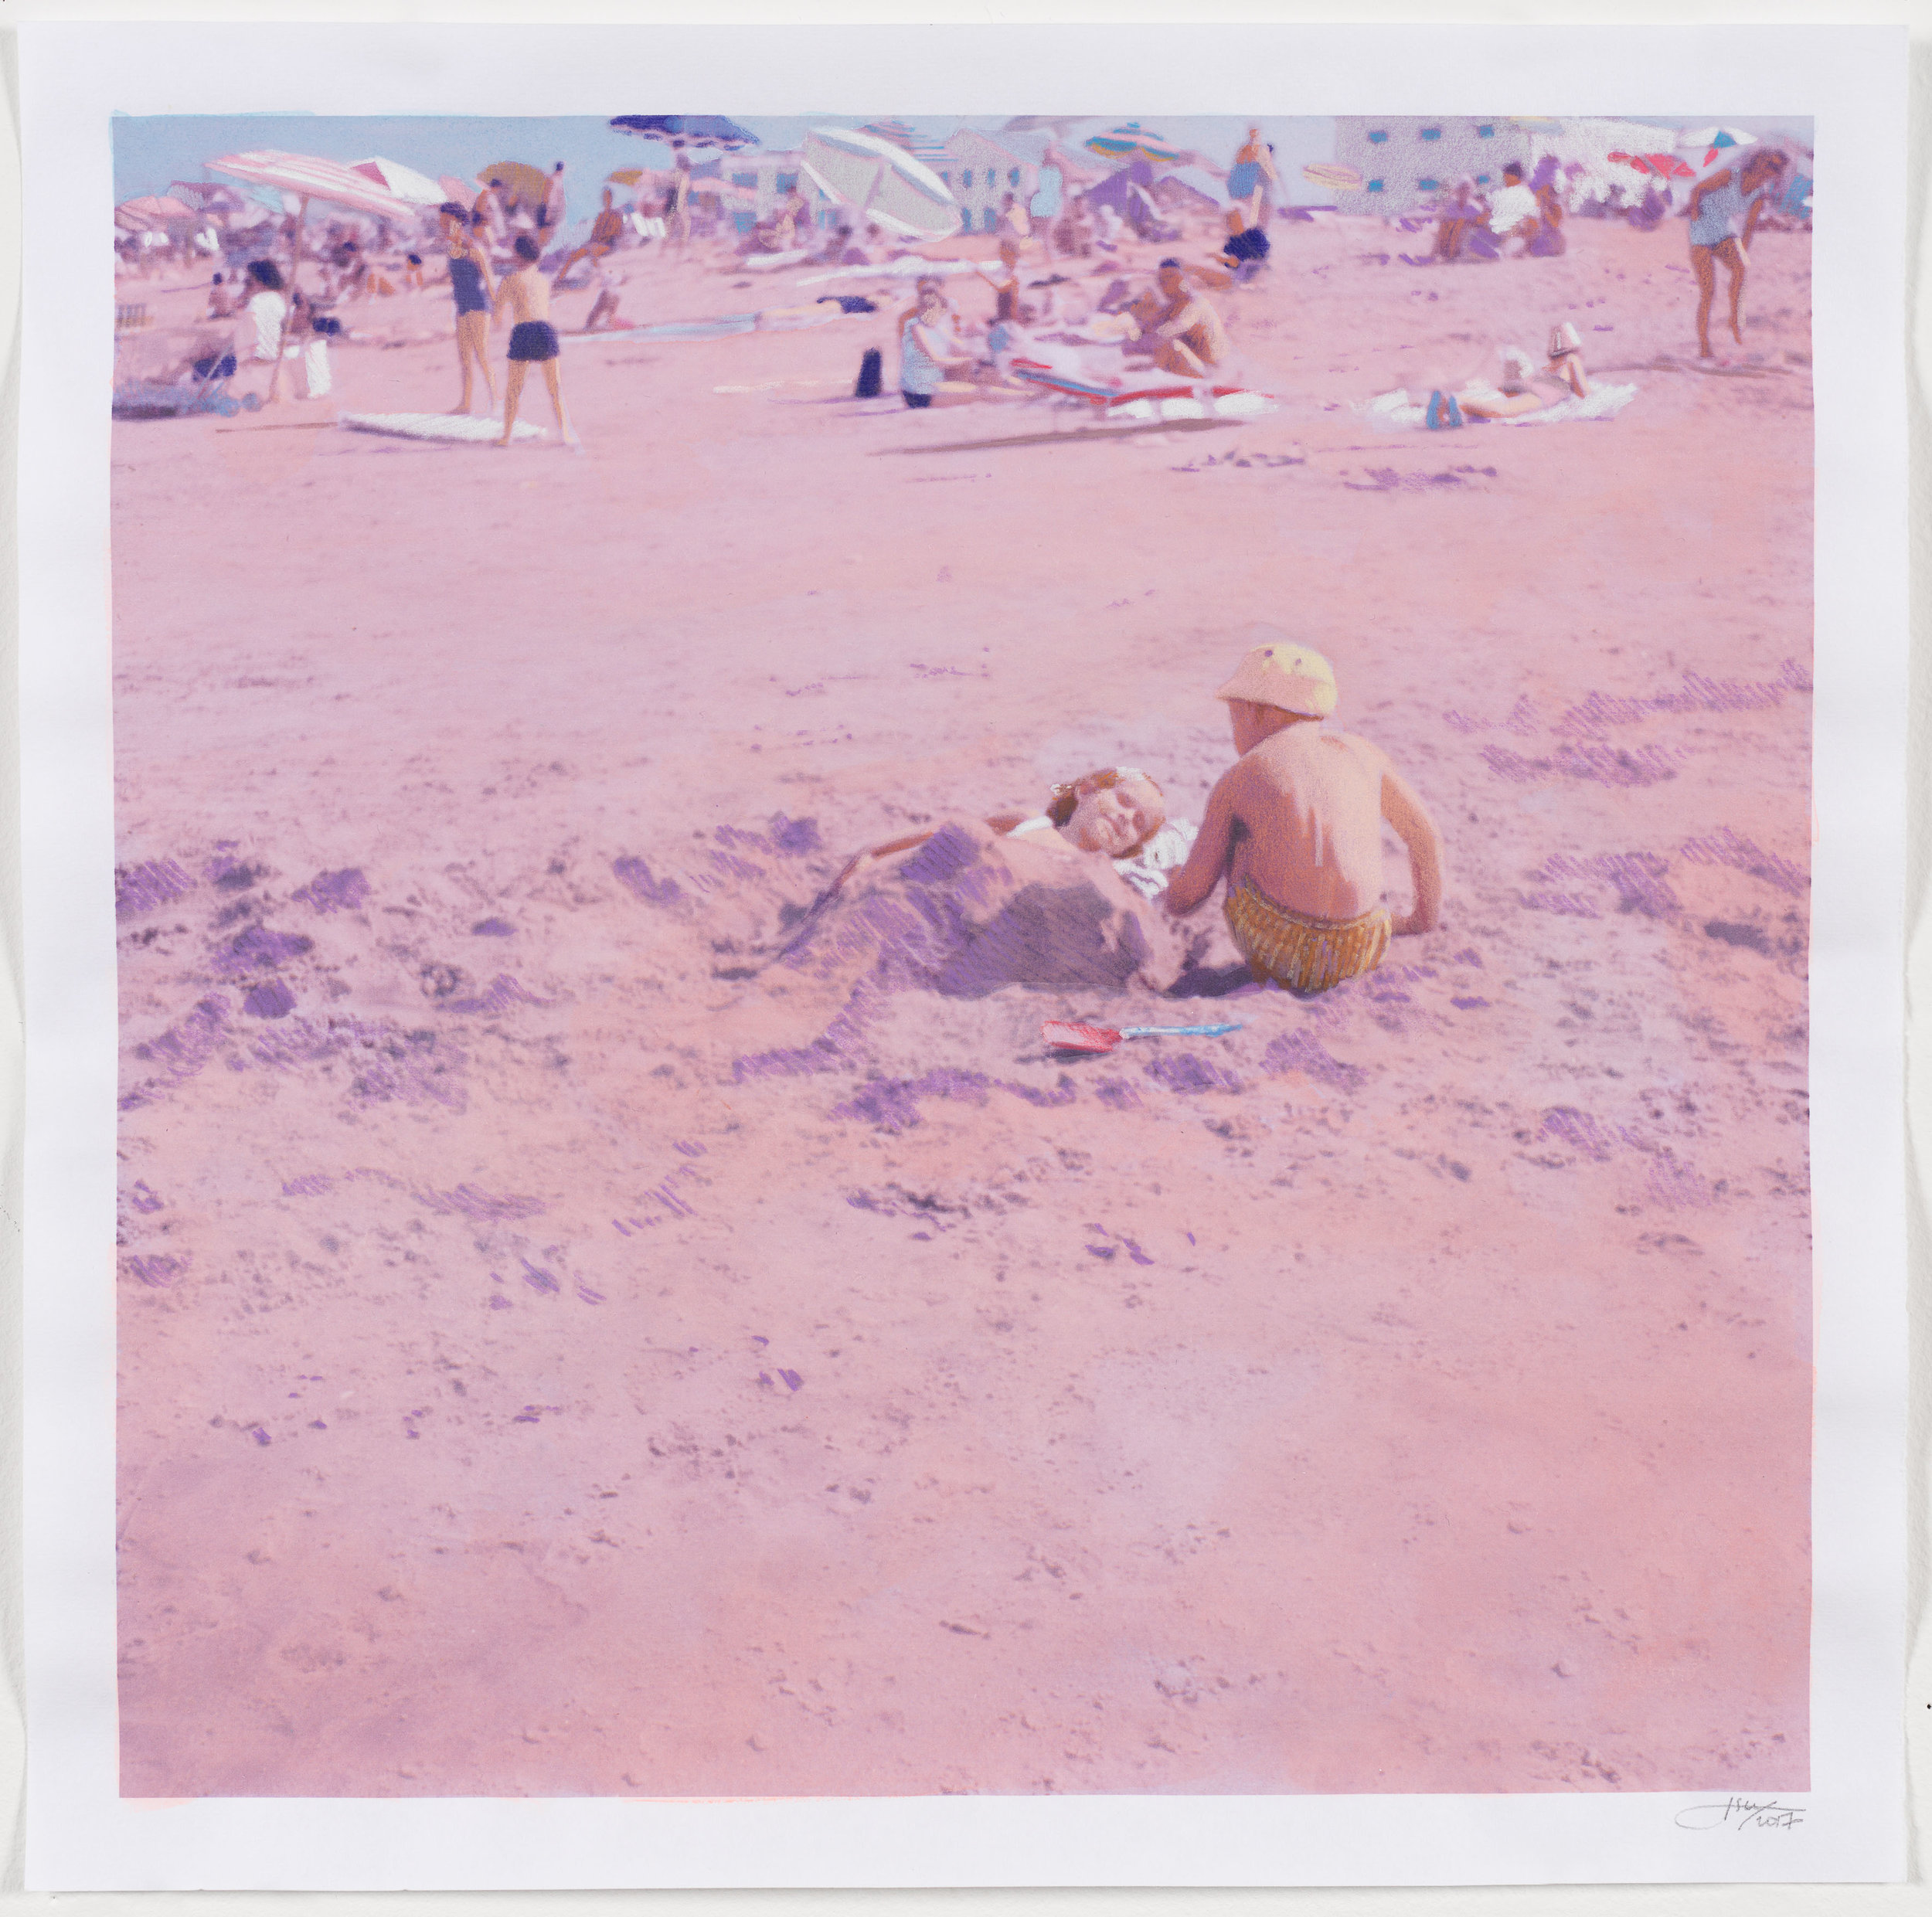 Isca Greenfield-Sanders  No Name (Beach),  2018 Mixed media watercolor with color pencil 15.5 x 15.5 in. Courtesy of the artist and Berggruen Gallery   View on Artsy